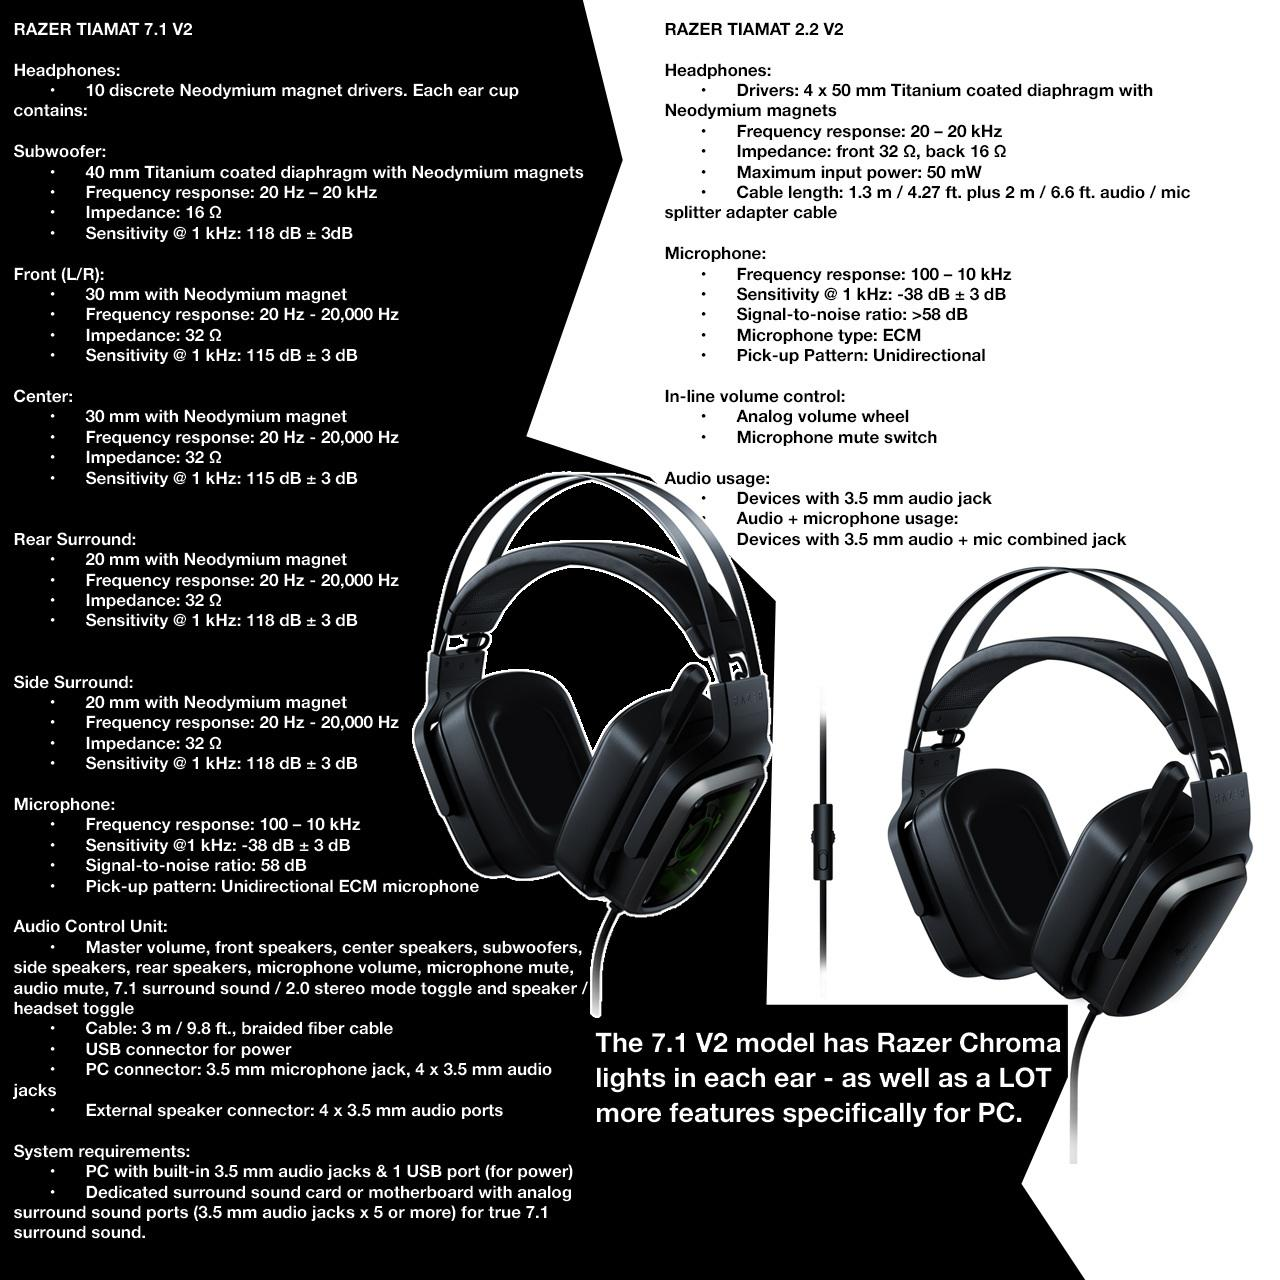 Razer Tiamat headsets V2 include directional audio and